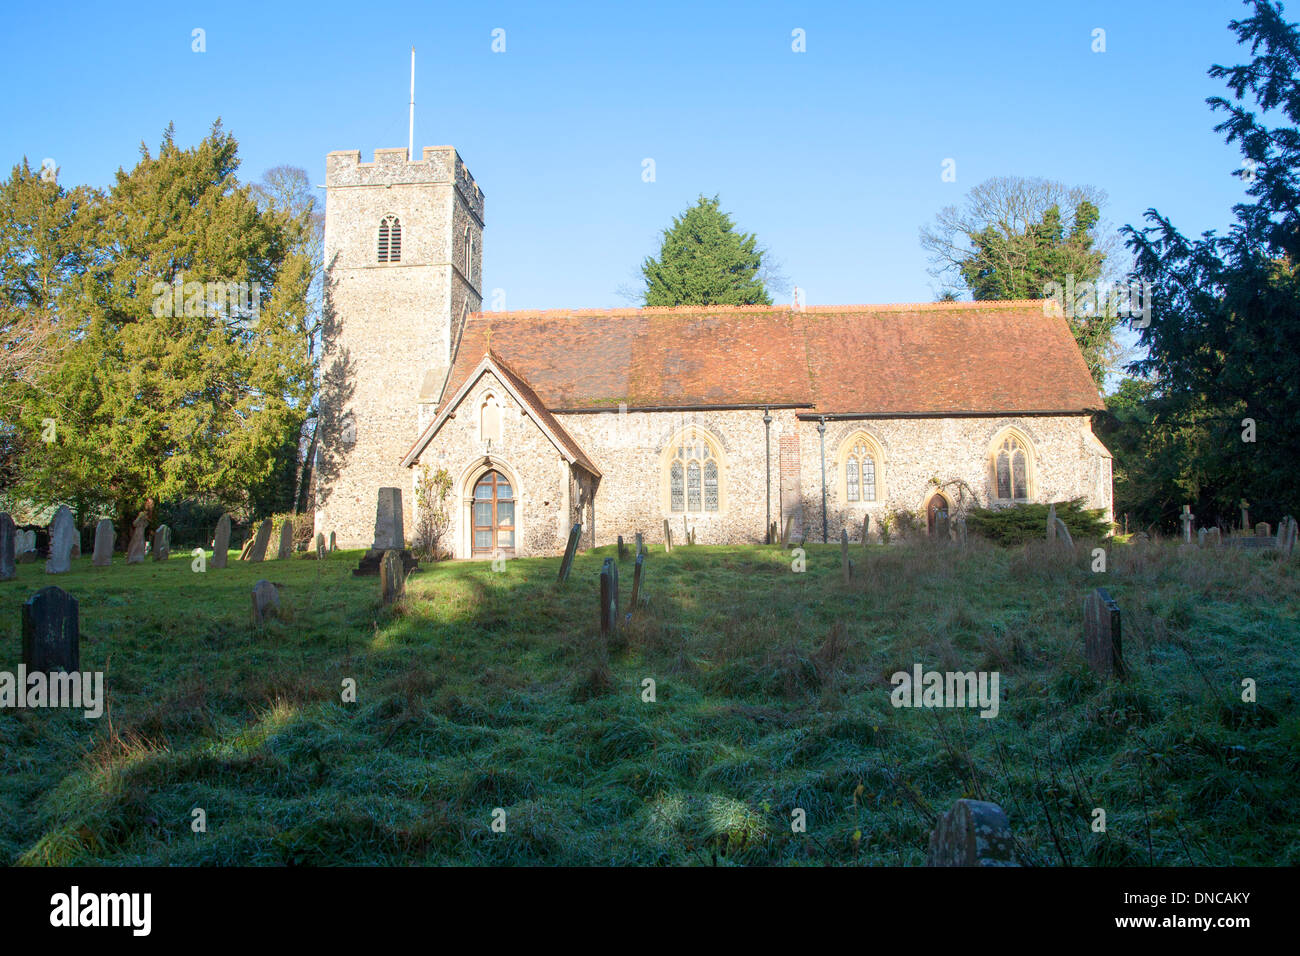 St Mary Magdalene parish church, Sternfield, Suffolk, England Stock Photo